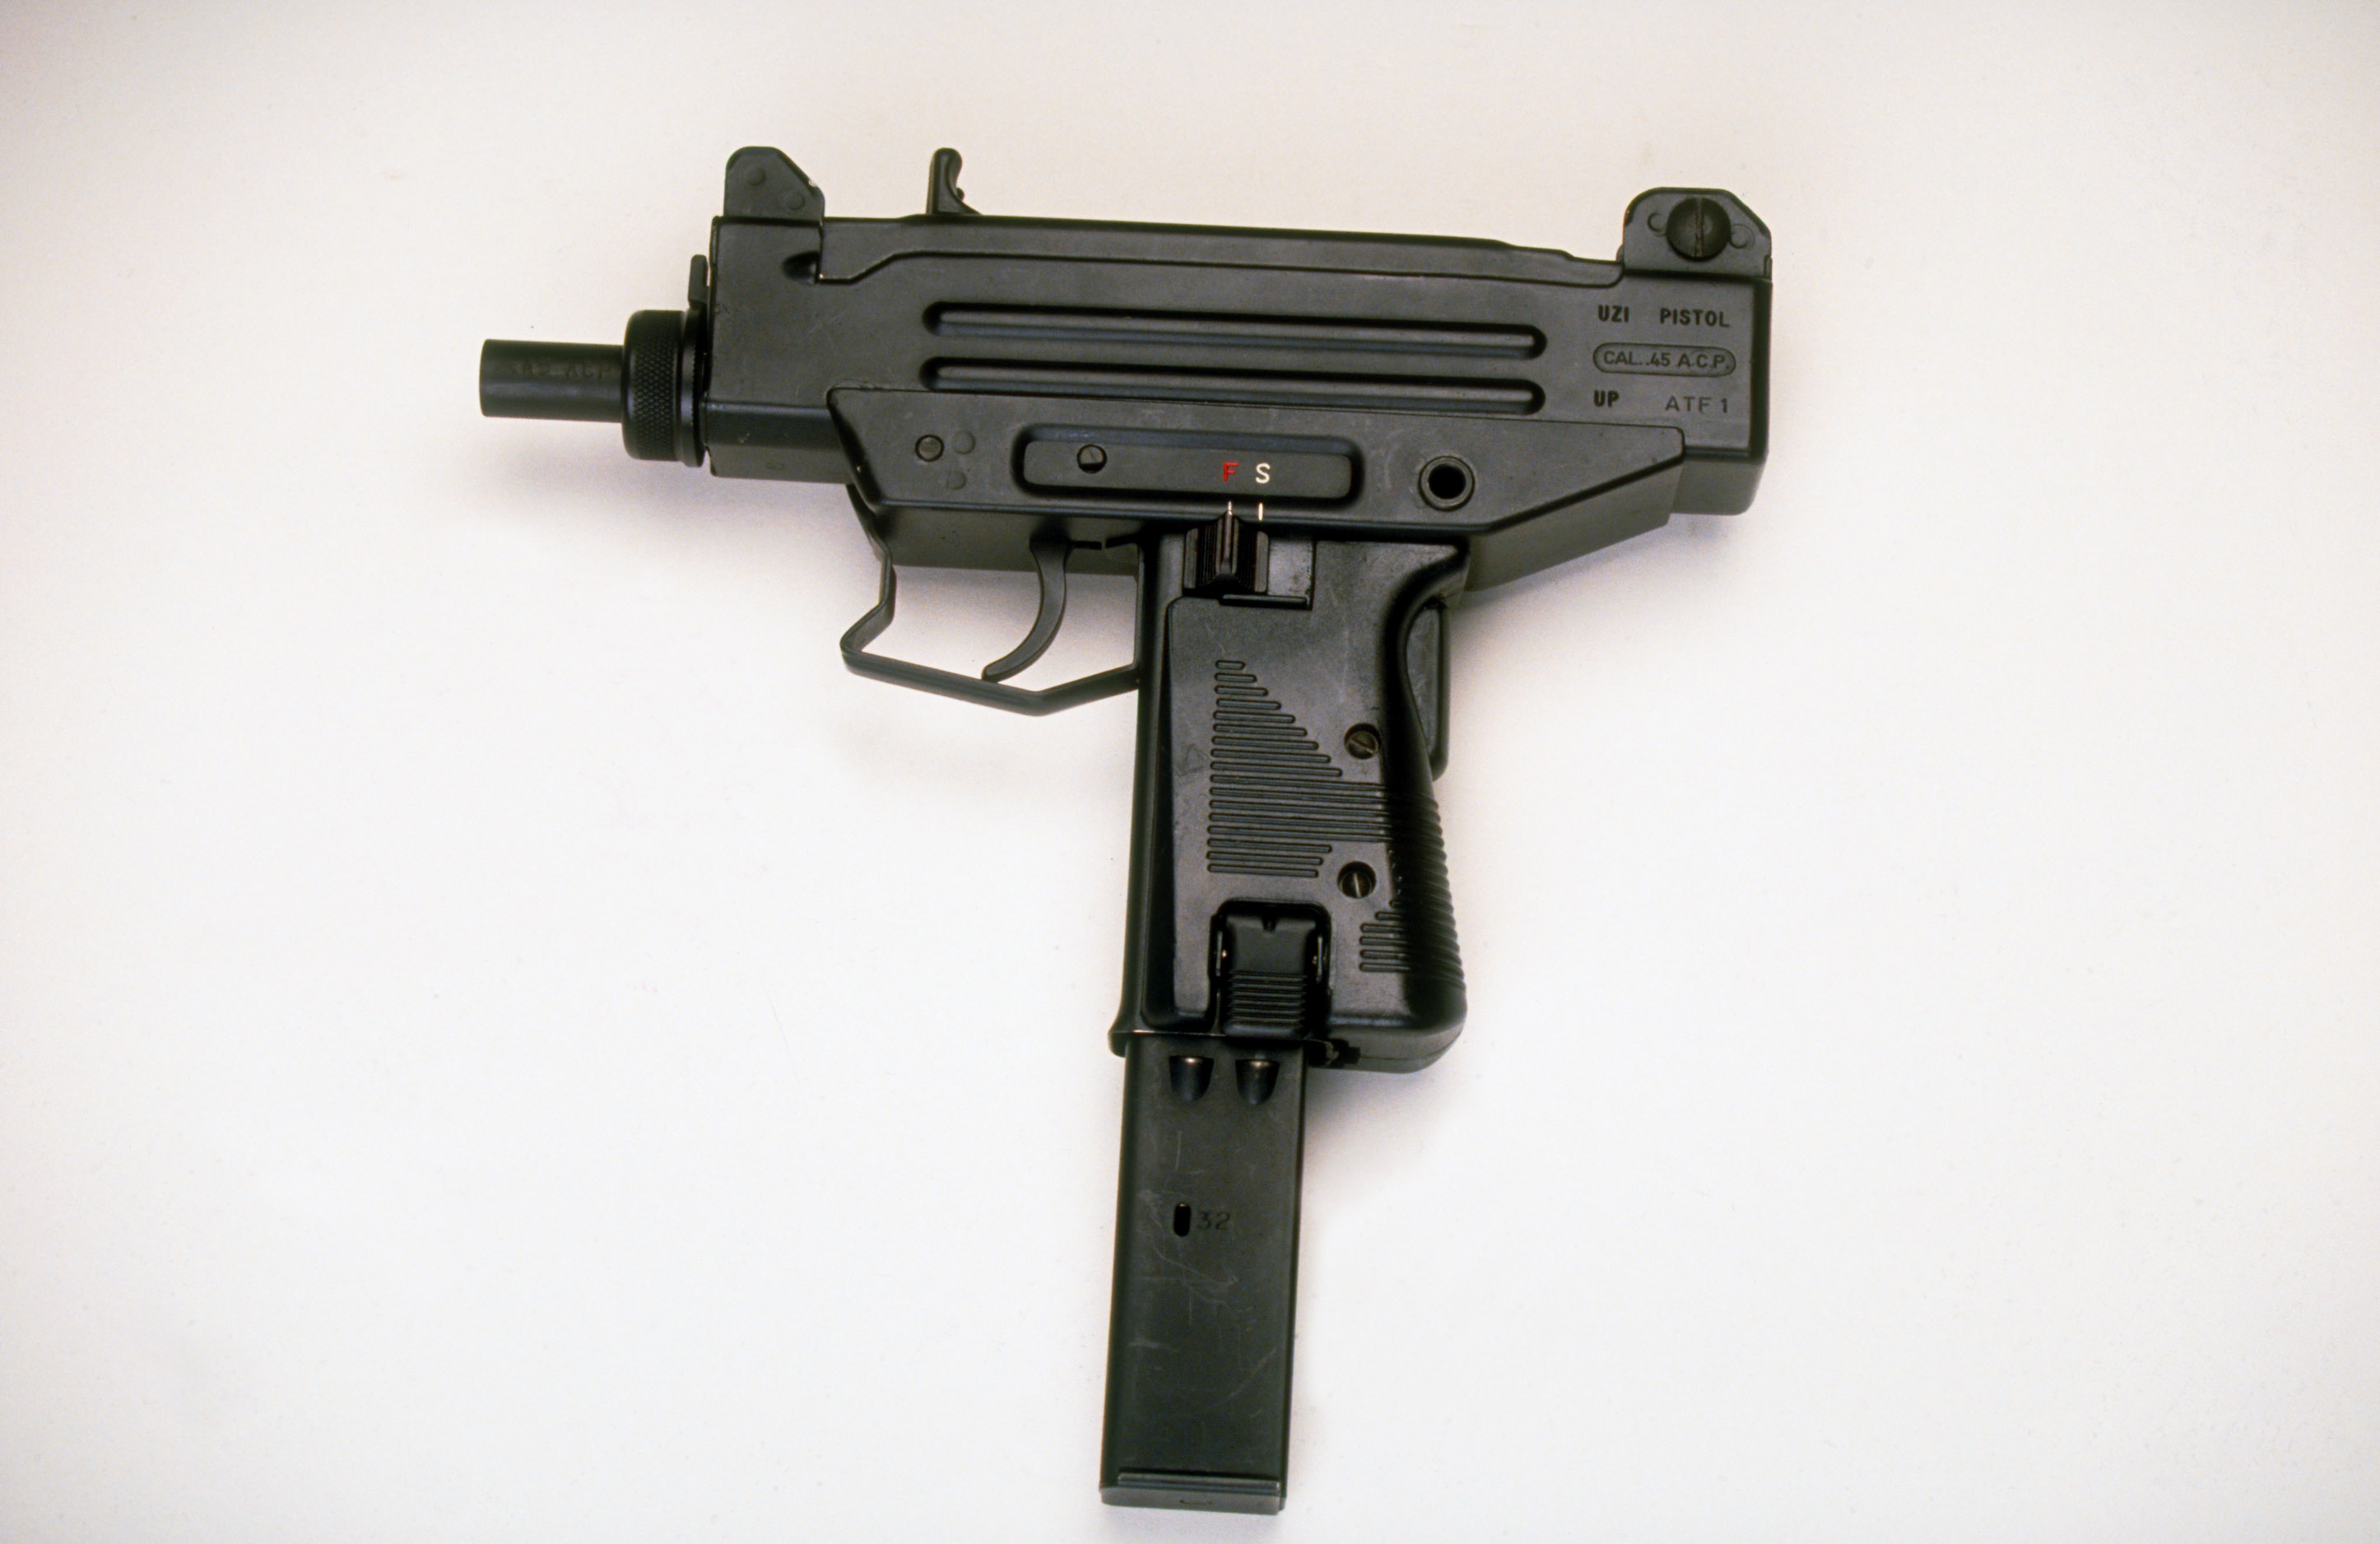 An UZI assault pistol